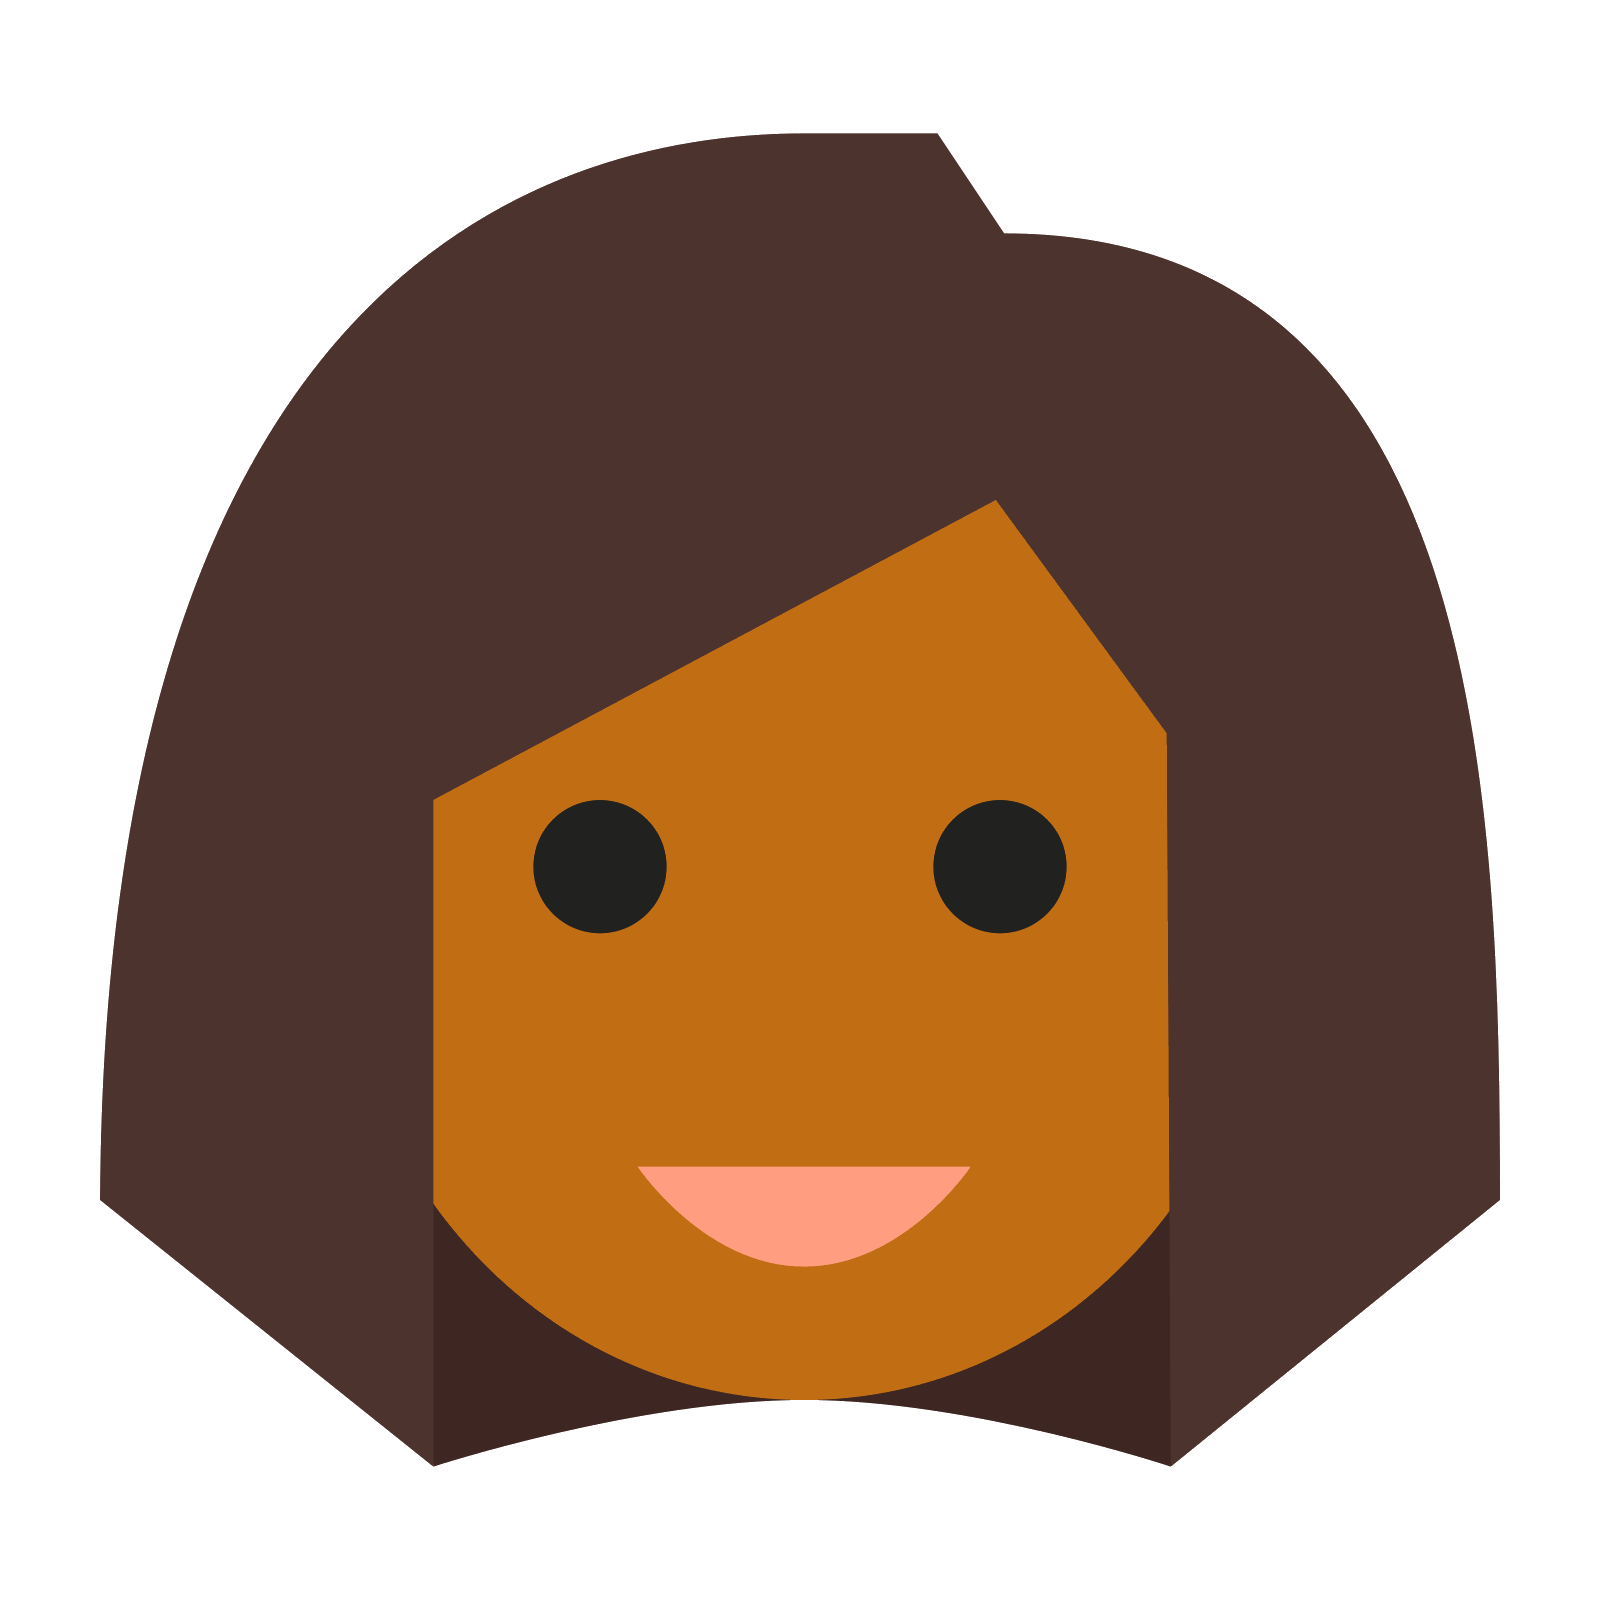 black female png. Skin clipart different skin color